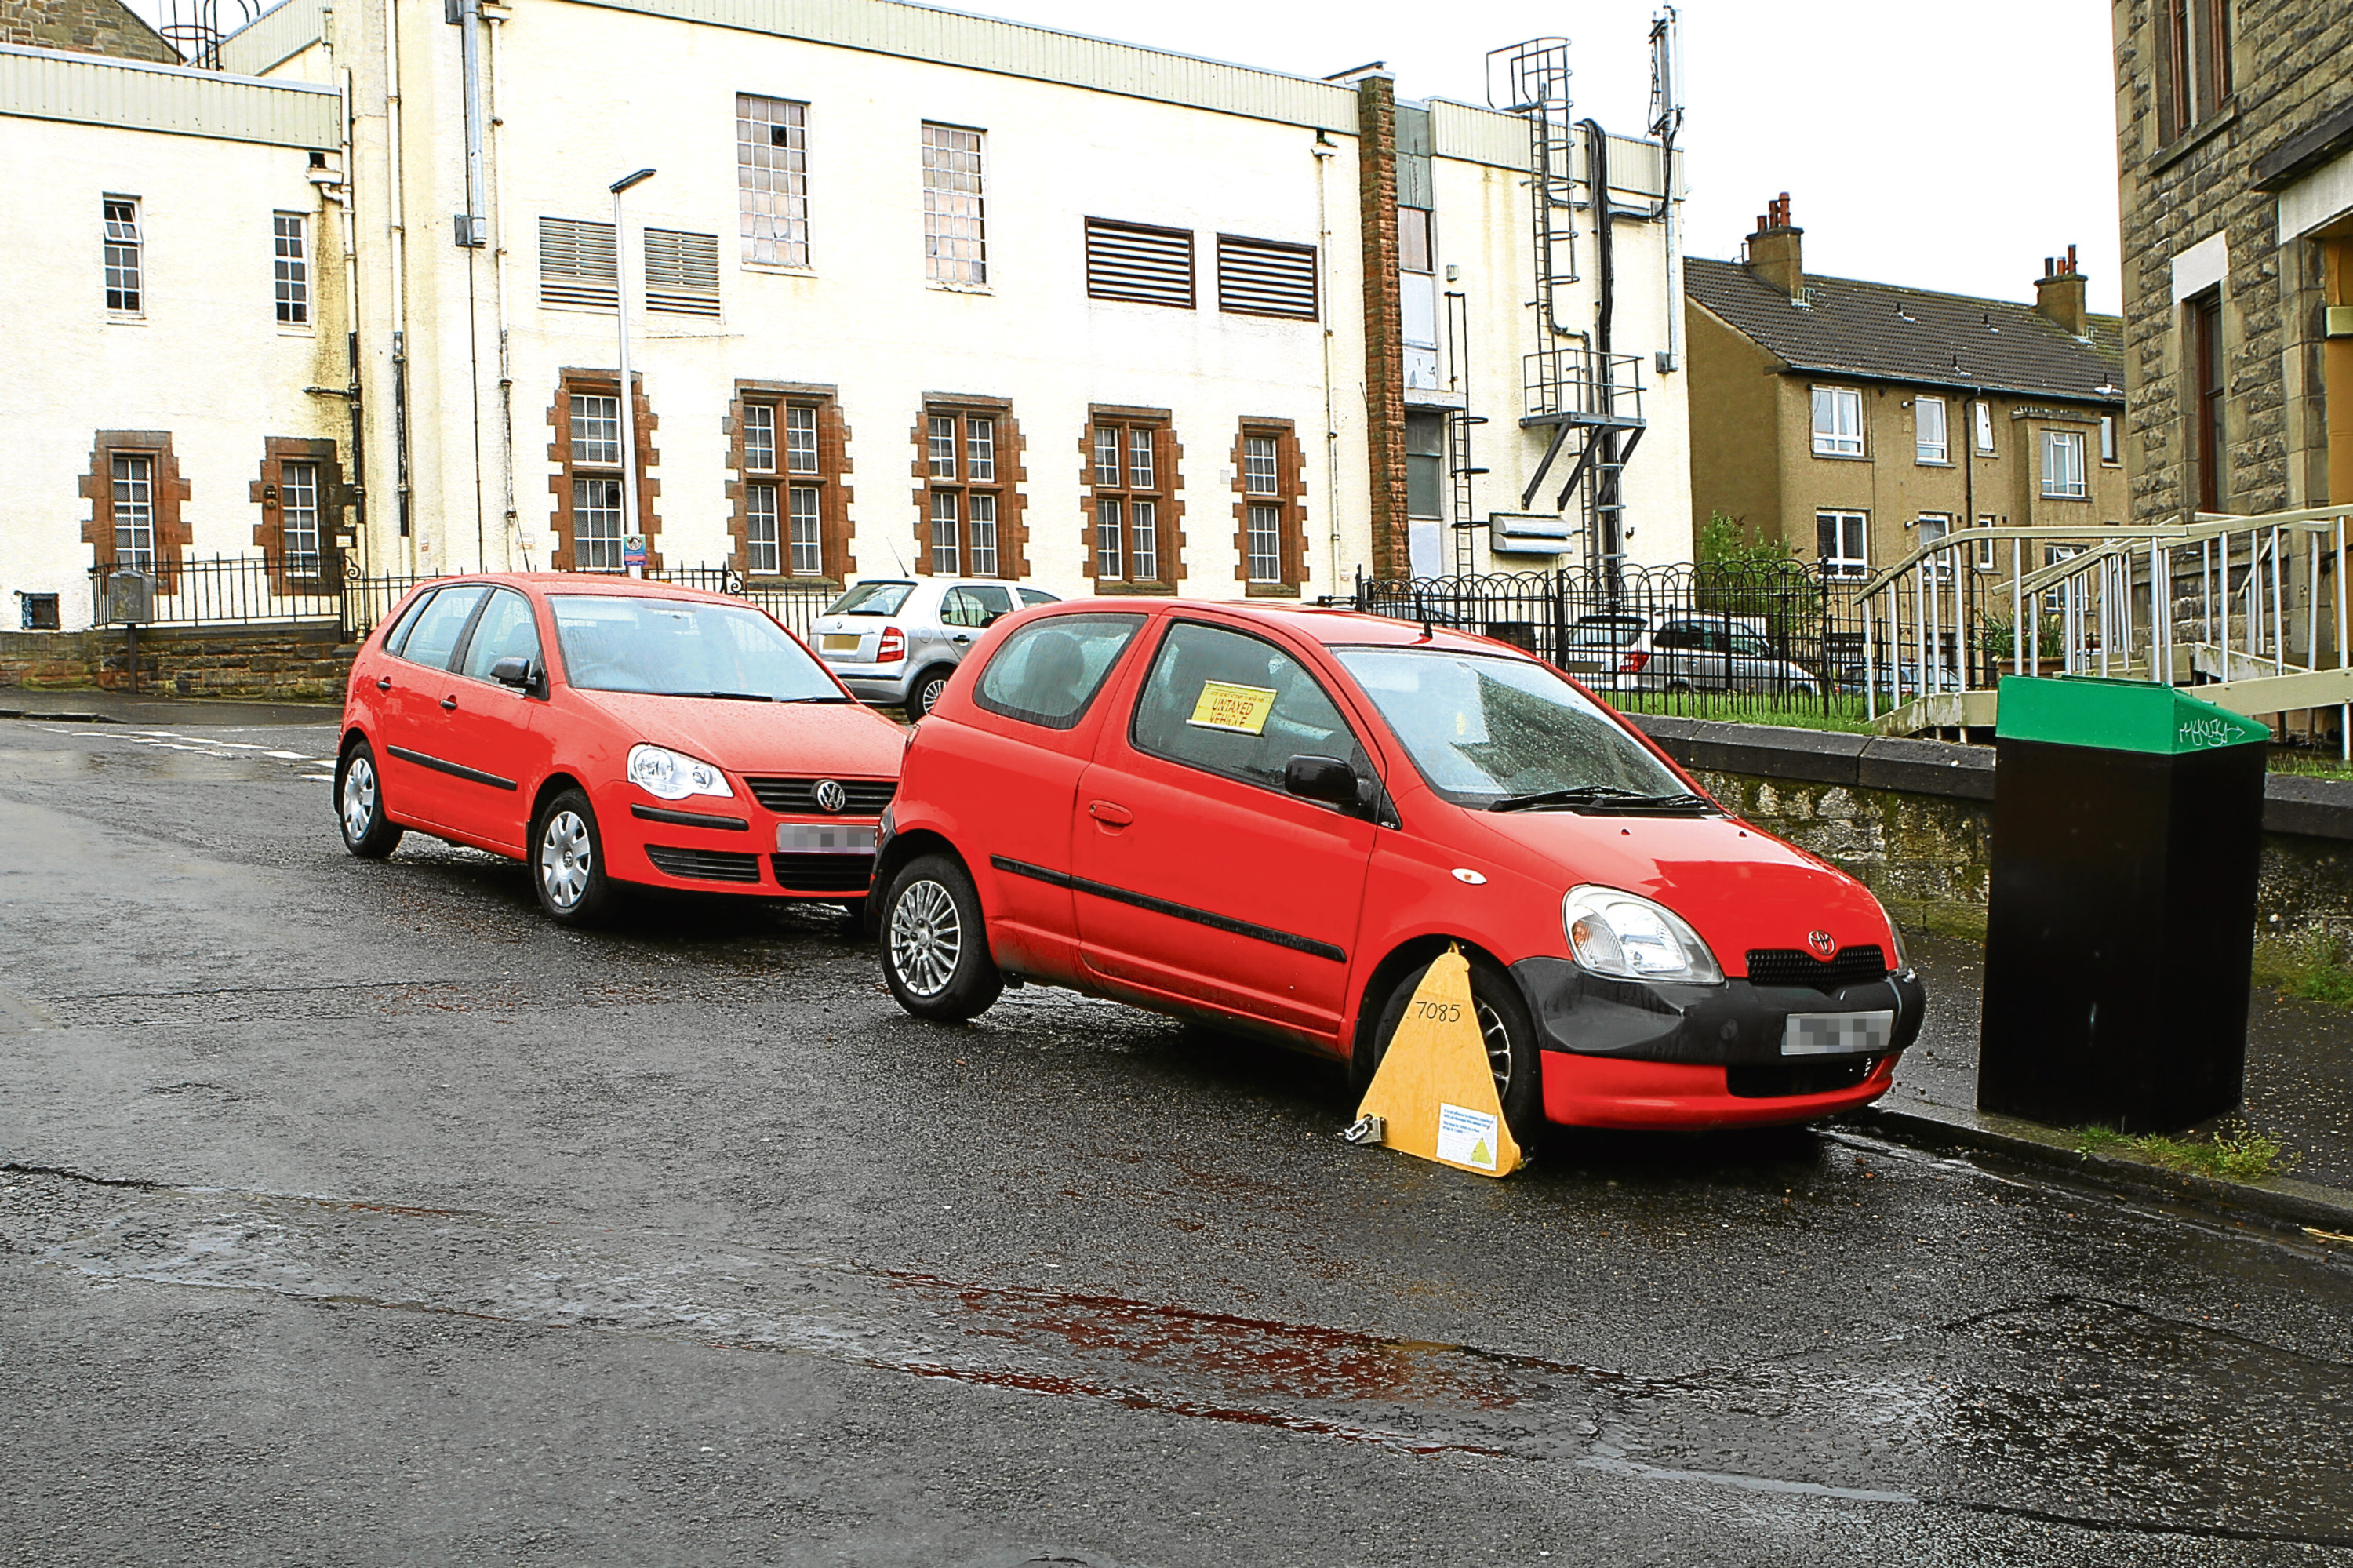 An untaxed and clamped vehicle on Seymour Street in Dundee.